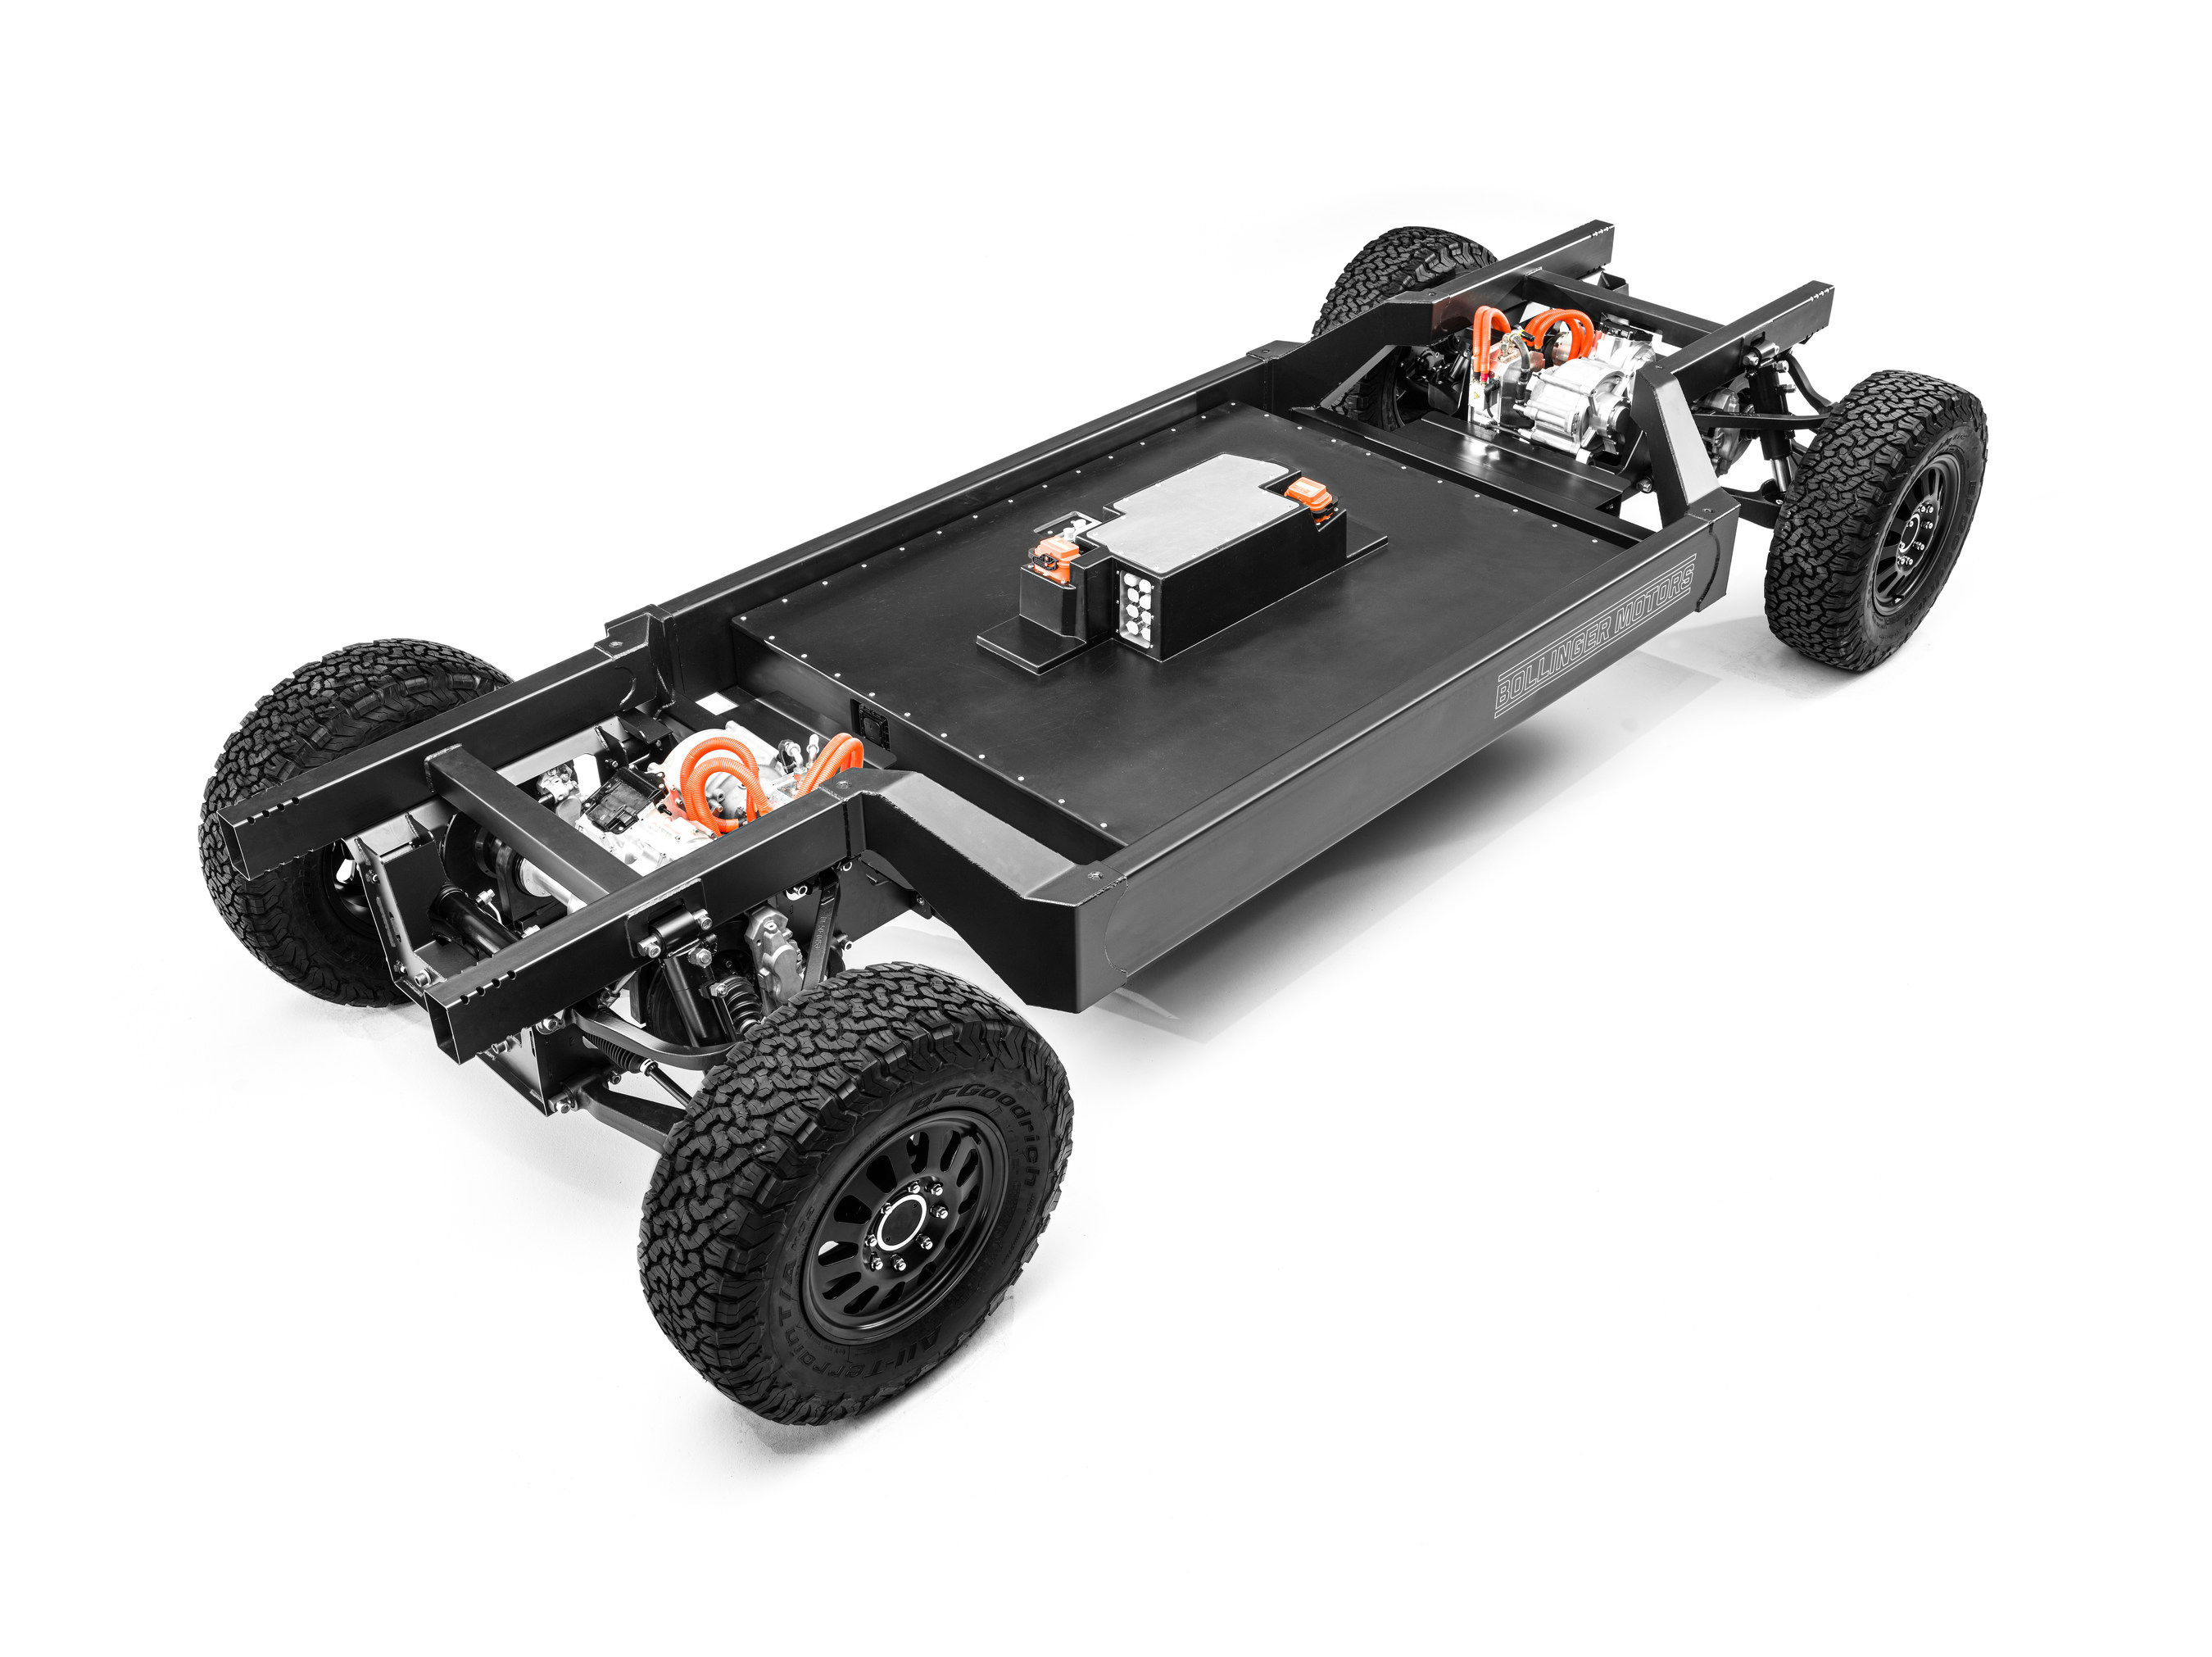 This is Bollinger Motors' patent-pending 180 kWh EV chassis thumbnail